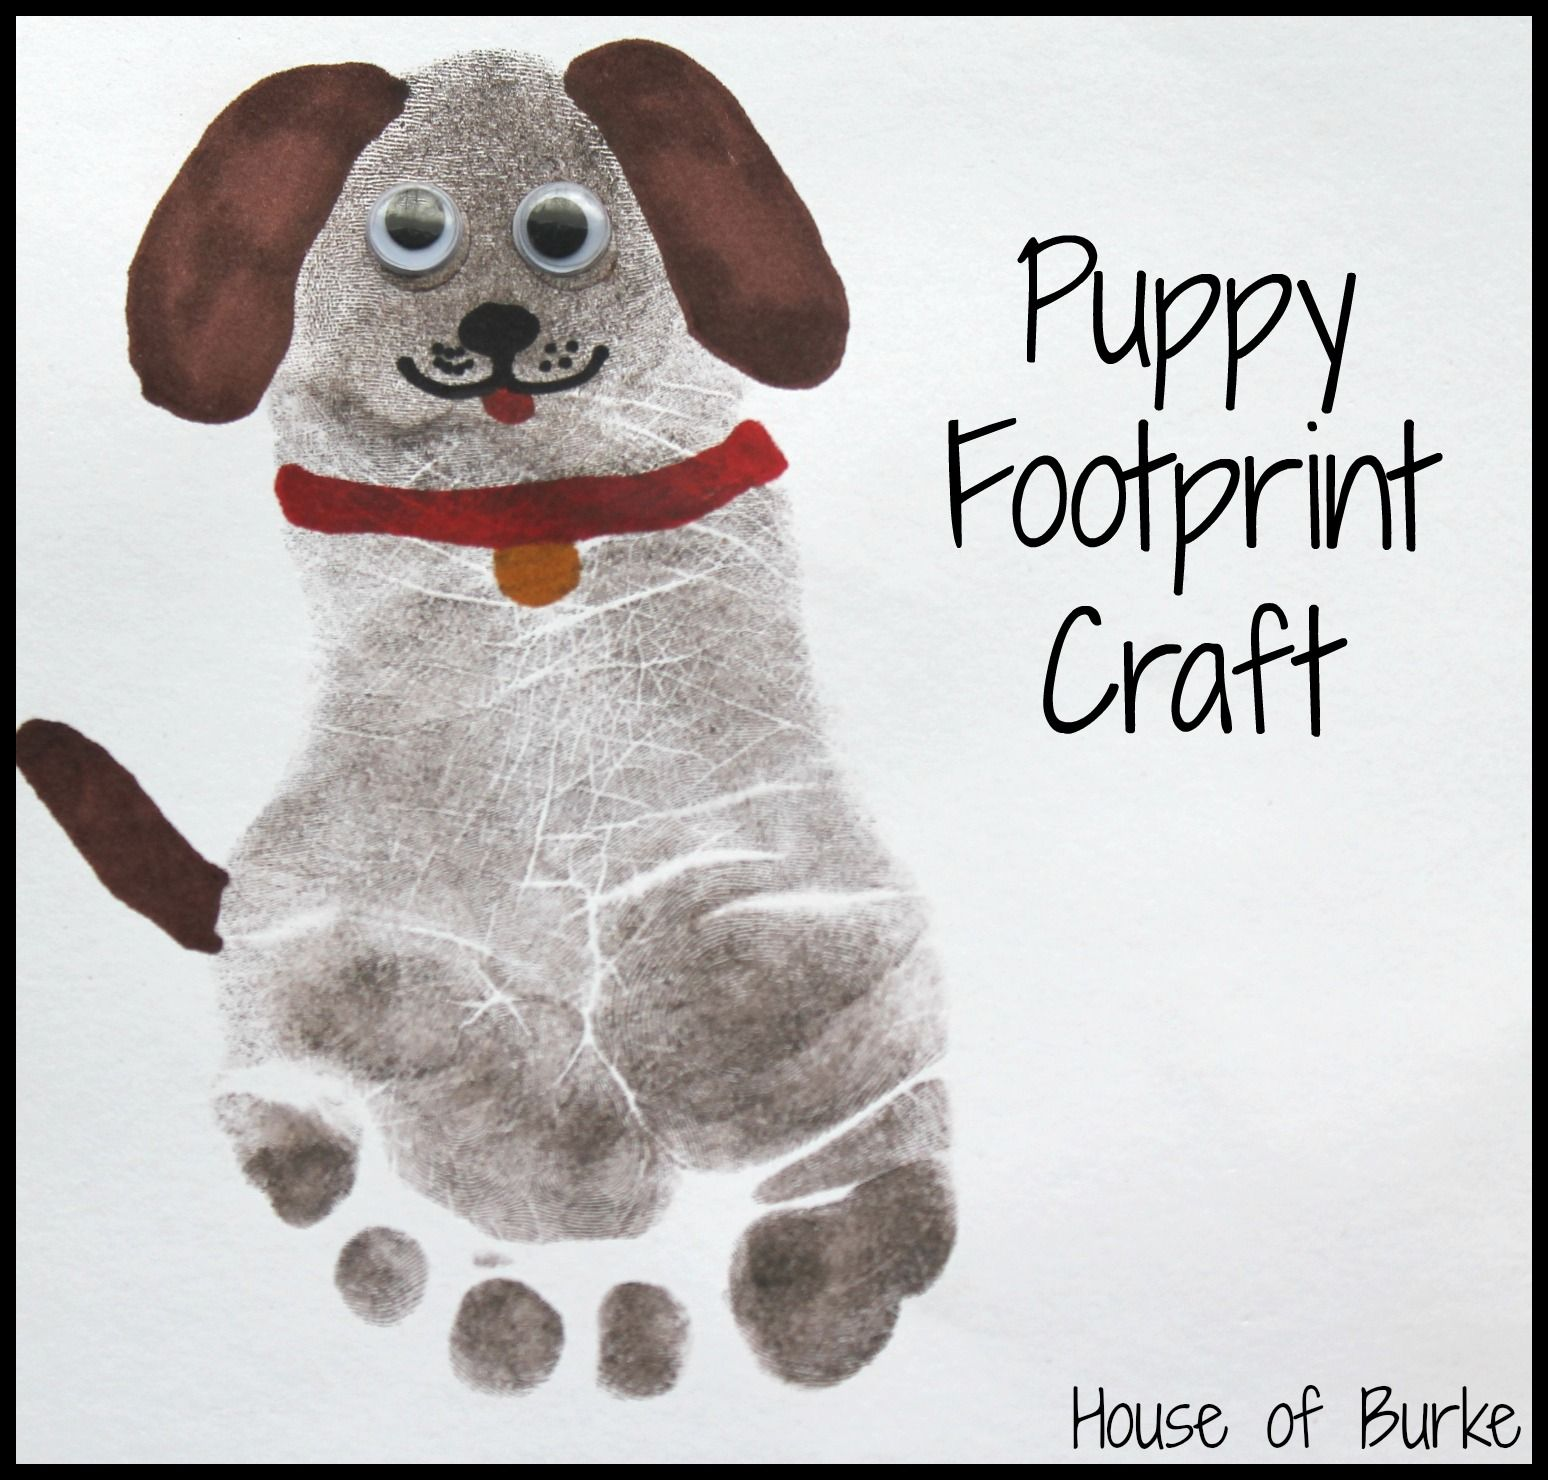 Pet print crafts craft printing and house for Dog craft ideas